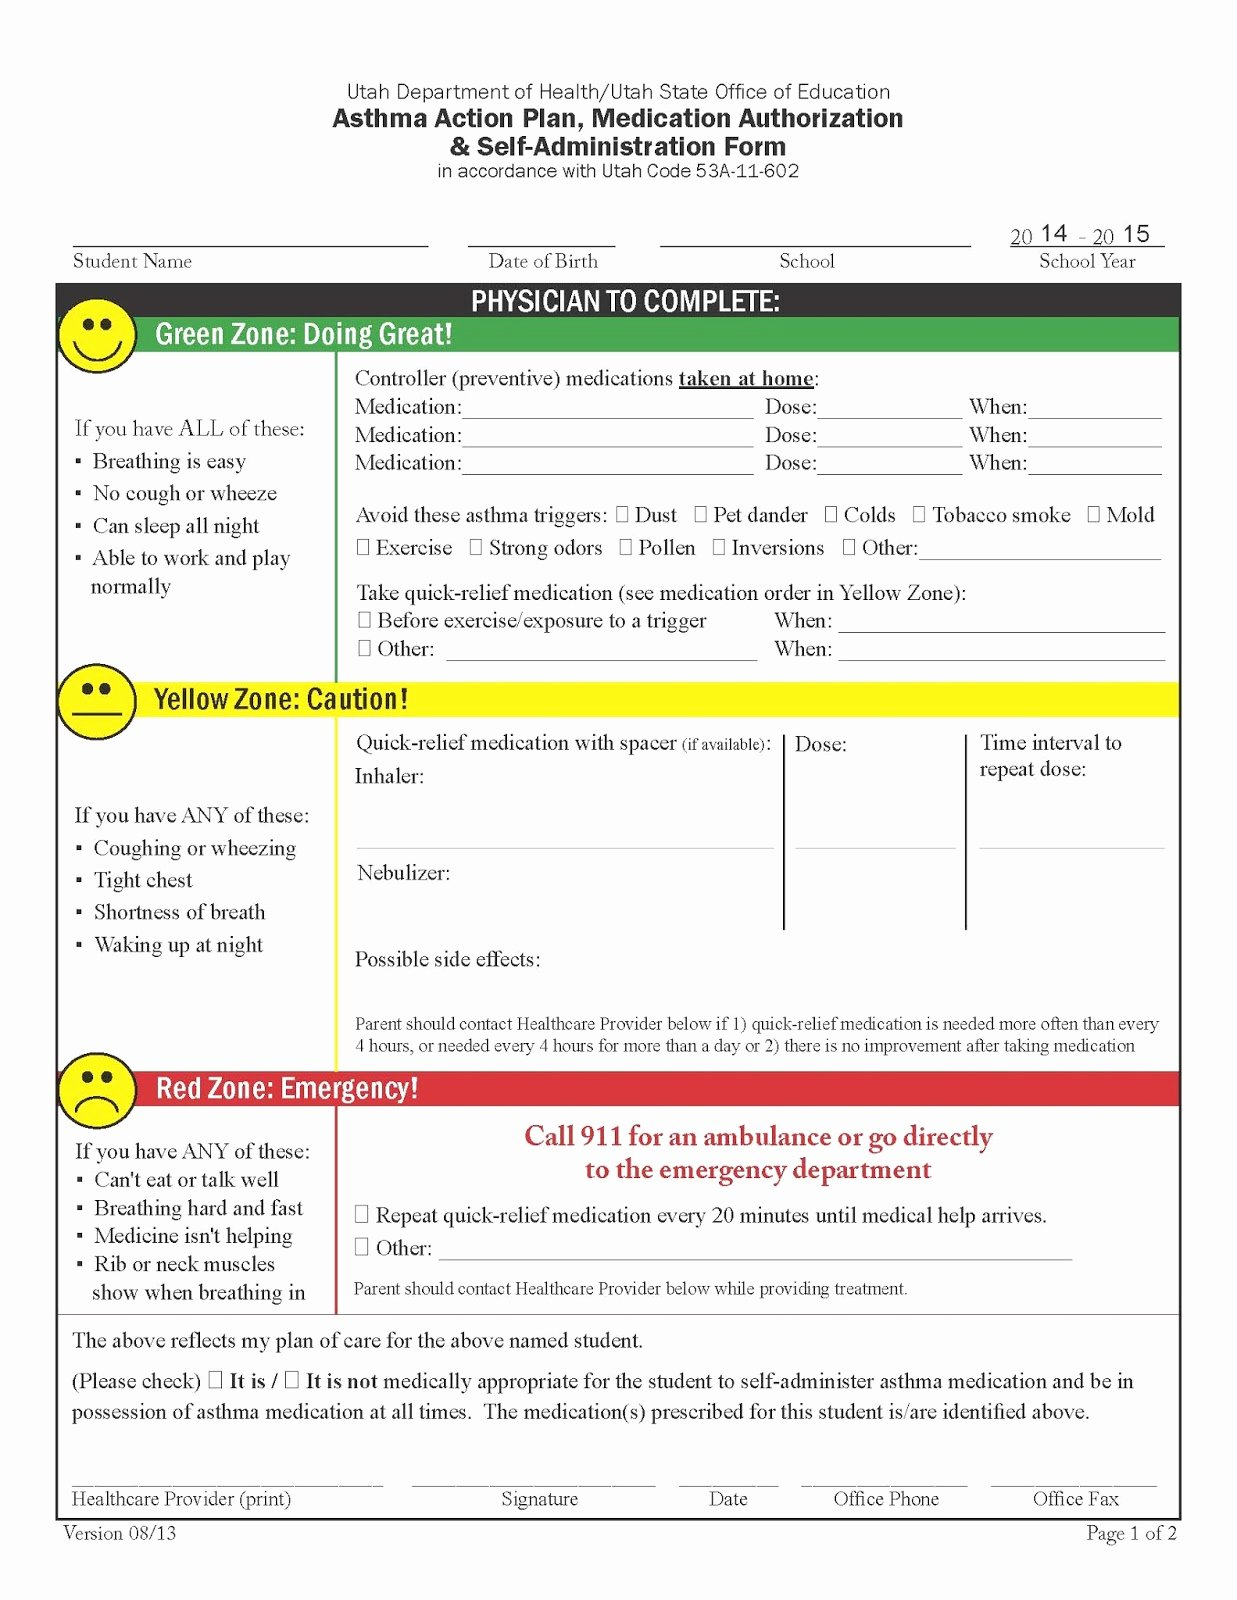 Asthma Action Plan form Beautiful My Life as An asthma Mom Prednisone Necessary Evil